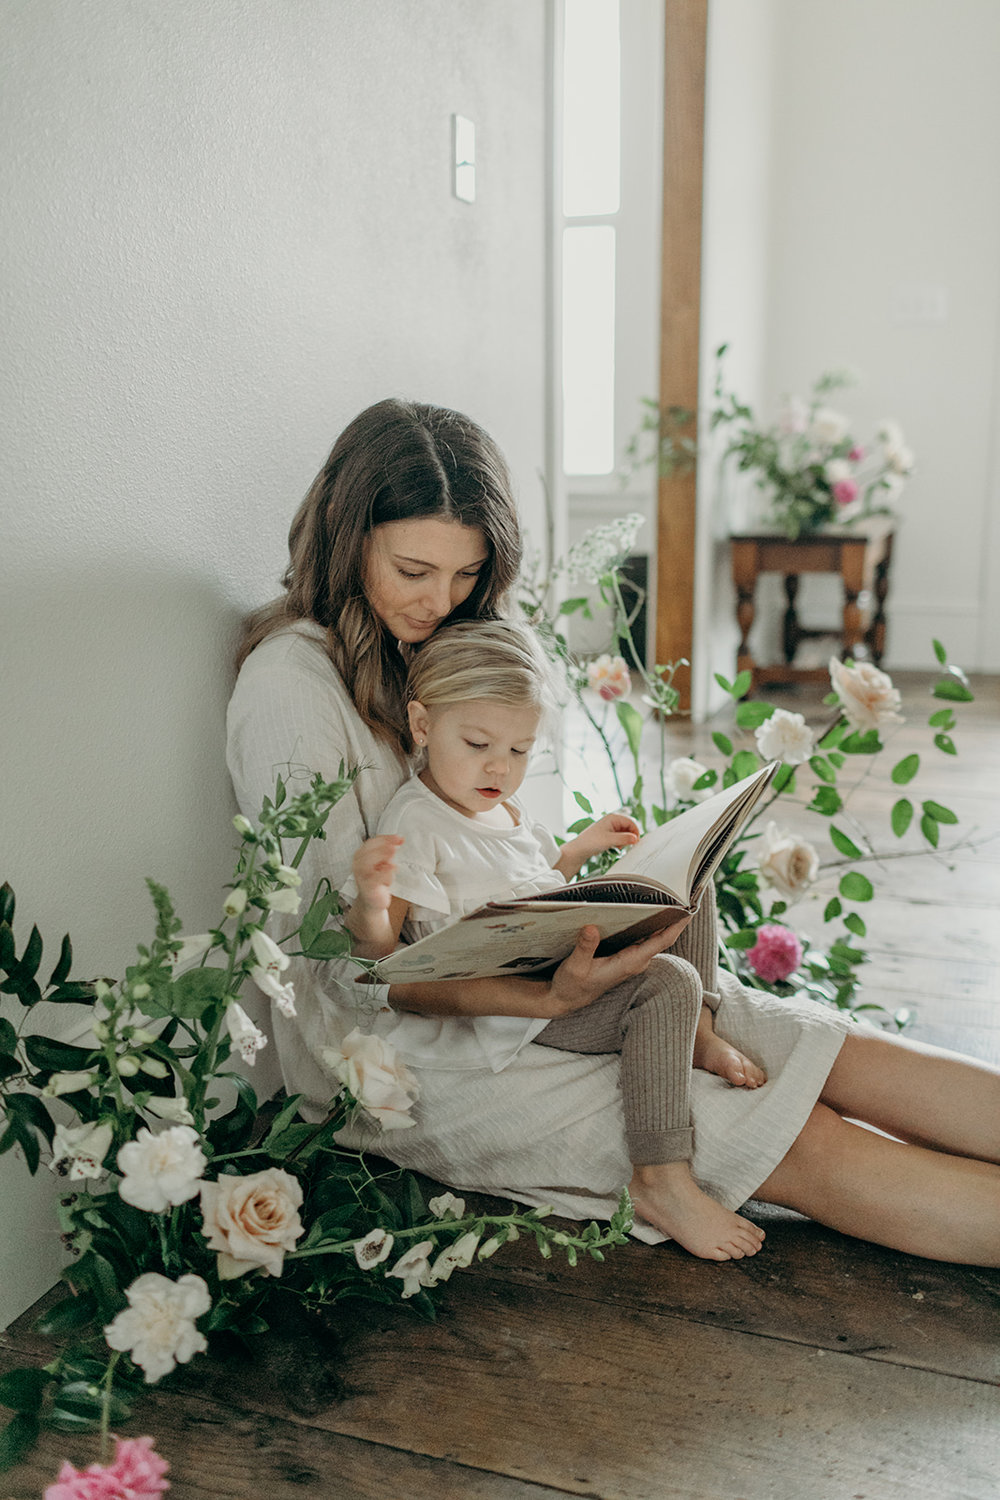 In home lifestyle session. Mother daughter floral design - eversomething.com